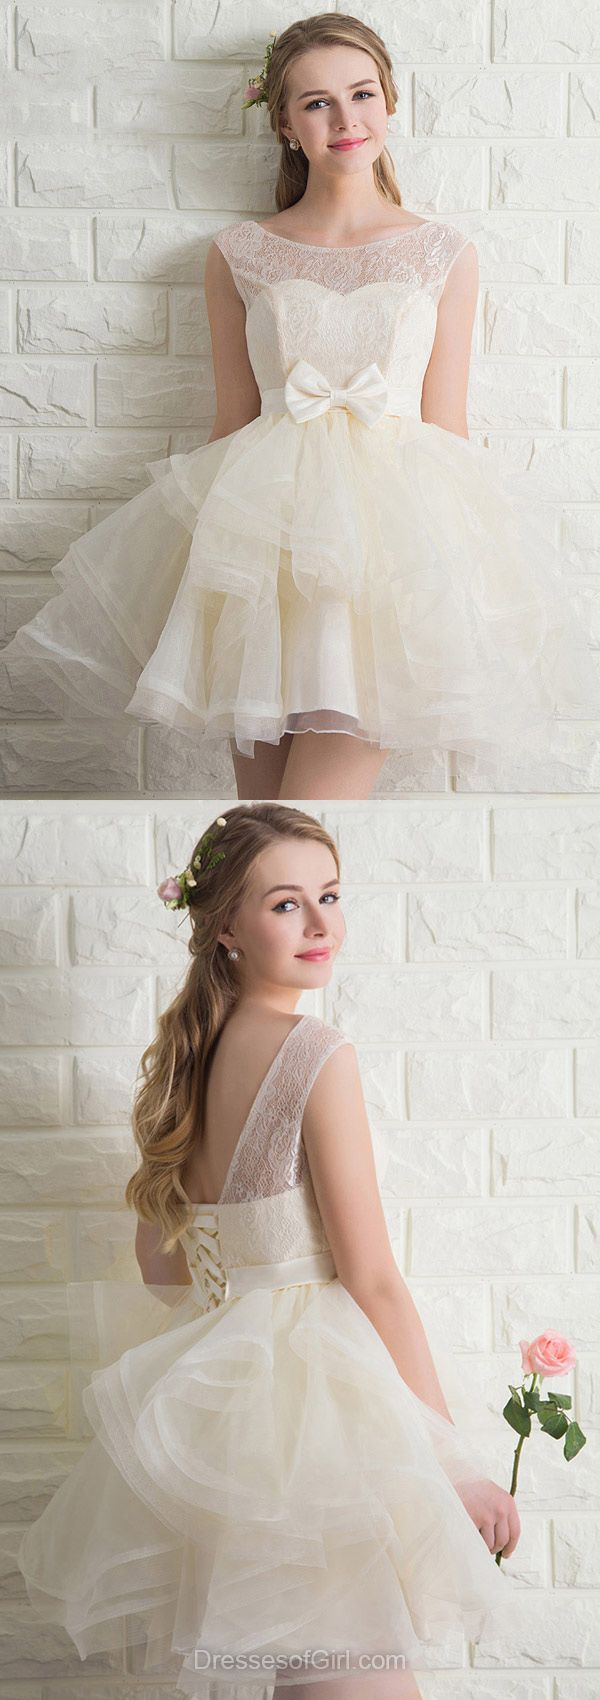 Princess Prom Dress, Short Prom Dresses, Iovry Homecoming Dress, Low Back Homecoming Dresses, Princess Cocktail Dress